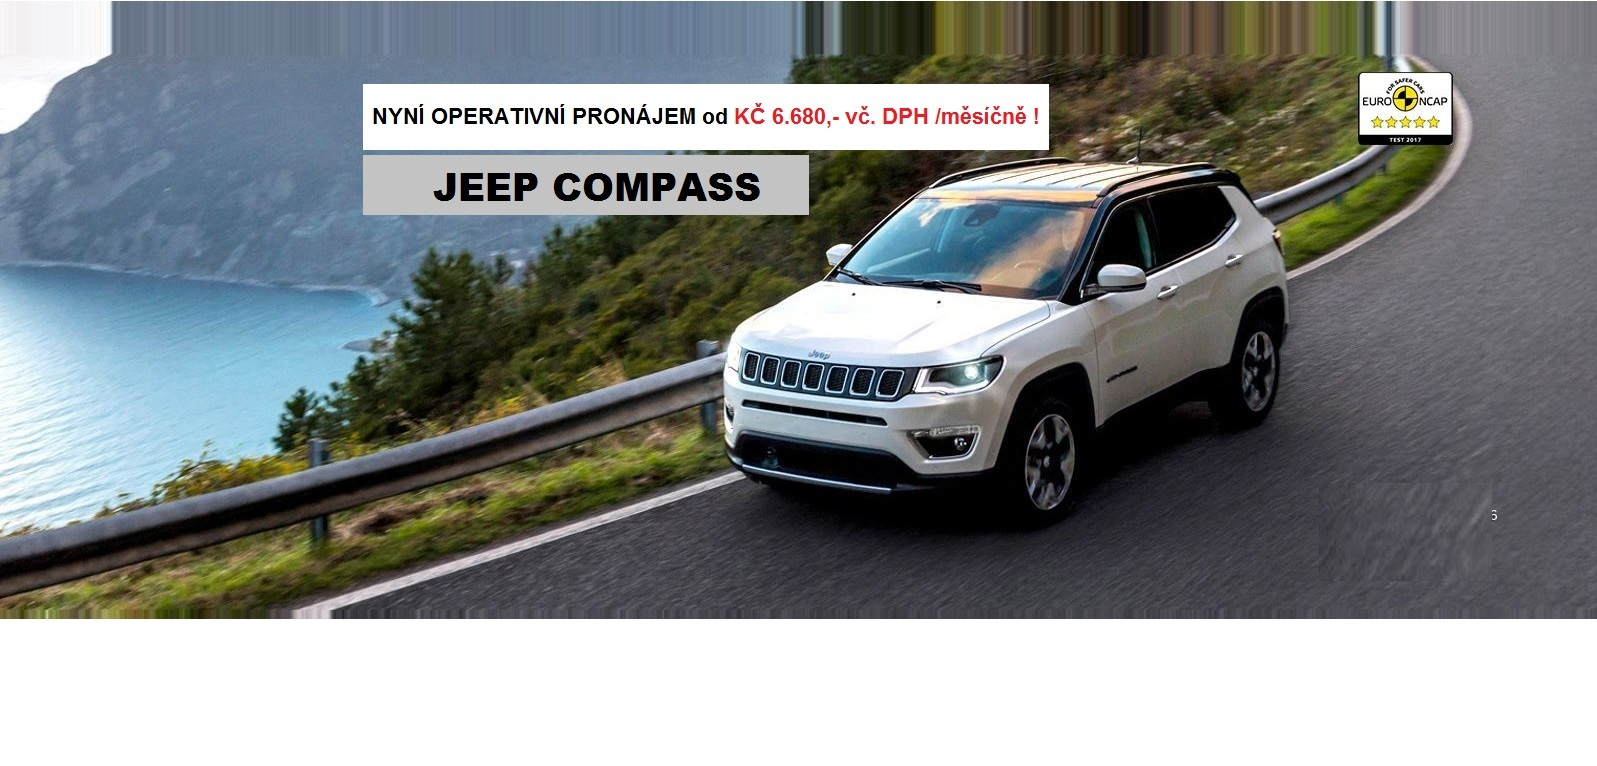 /images/mod_InteractiveBanner/img/78_1_1_2_jeep-compass-ol-text.jpg